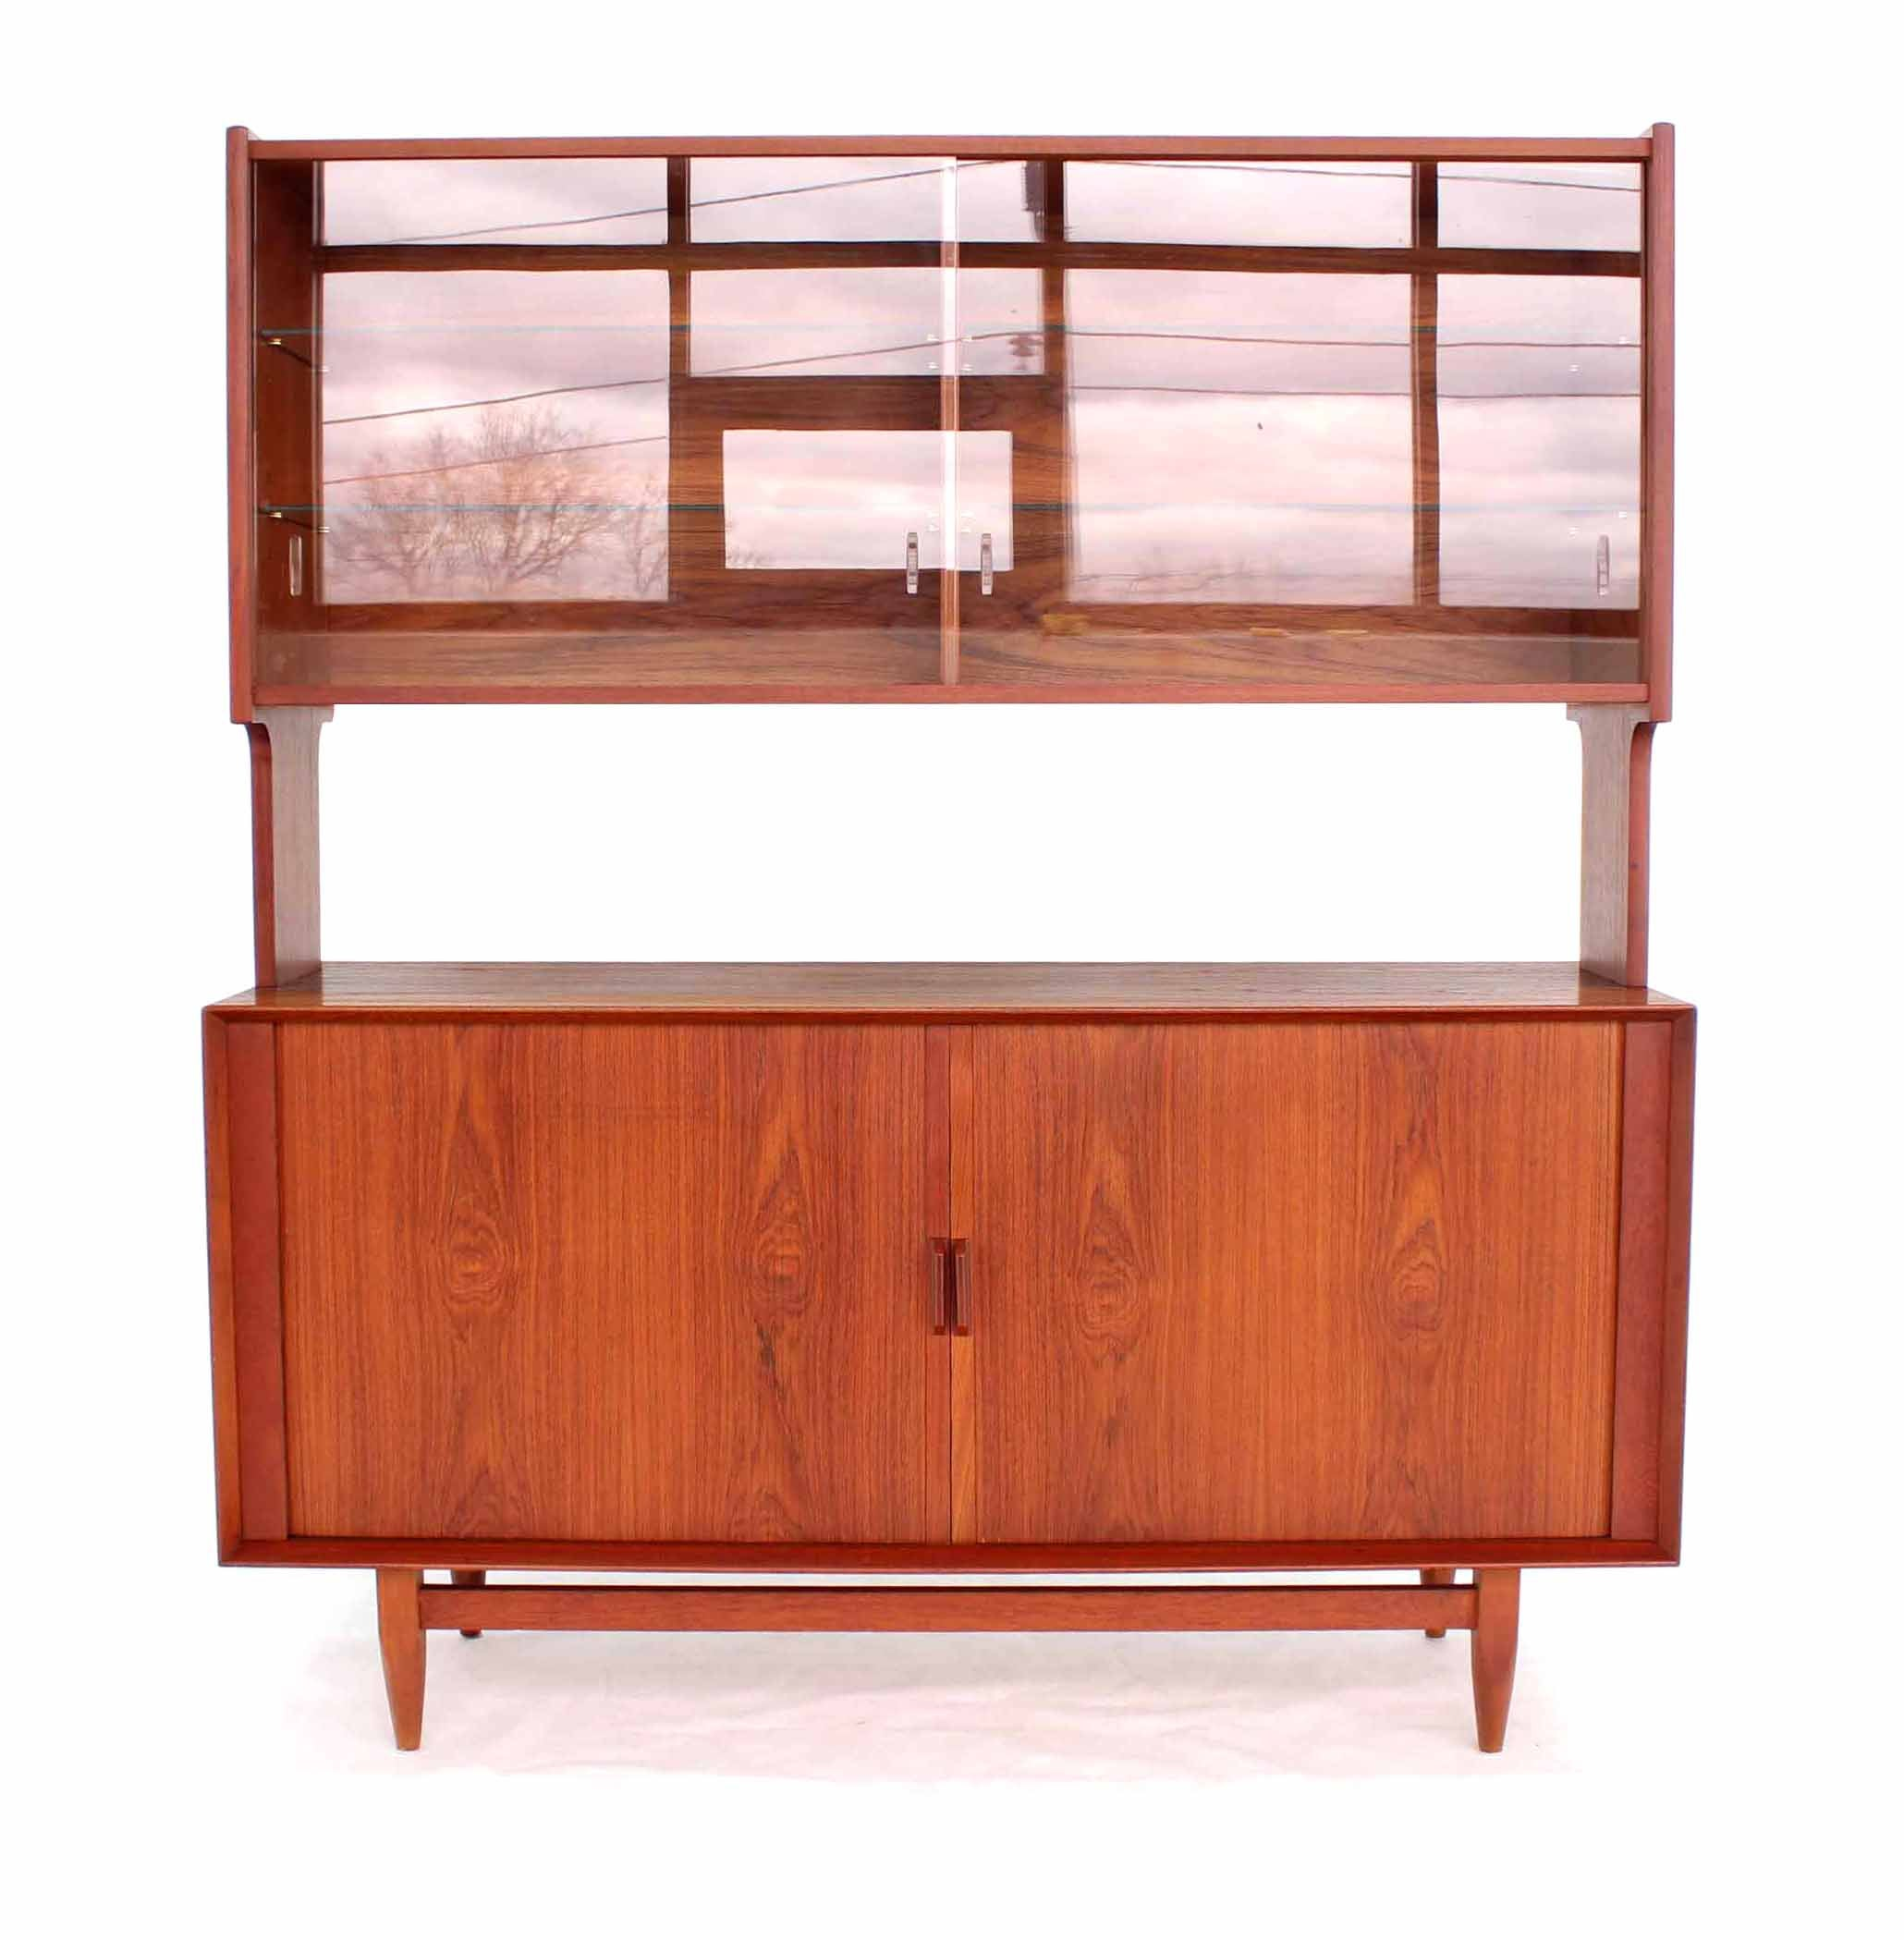 s mahogany x hutch bookcases buys particleboard shelve laminate ribbon material edge office products valido bookcase direct finish hon